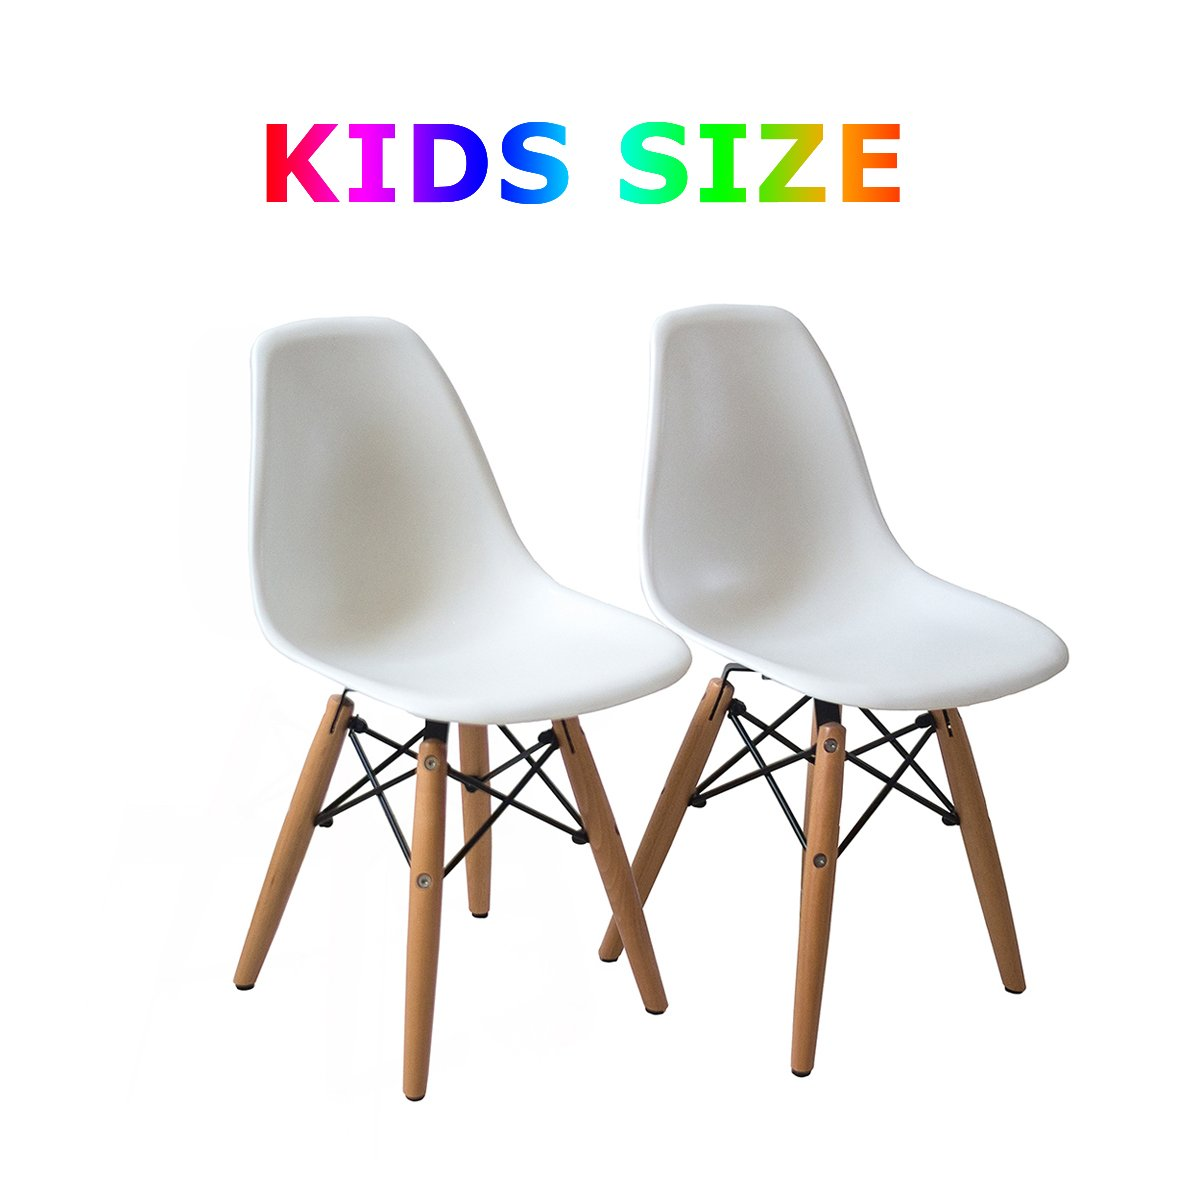 Amazon.com - Buschman Set of Two White Eames-Style Kids Dining Room Mid Century Chair Wooden Legs Armless Chairs - Chairs  sc 1 st  Amazon.com & Amazon.com - Buschman Set of Two White Eames-Style Kids Dining Room ...